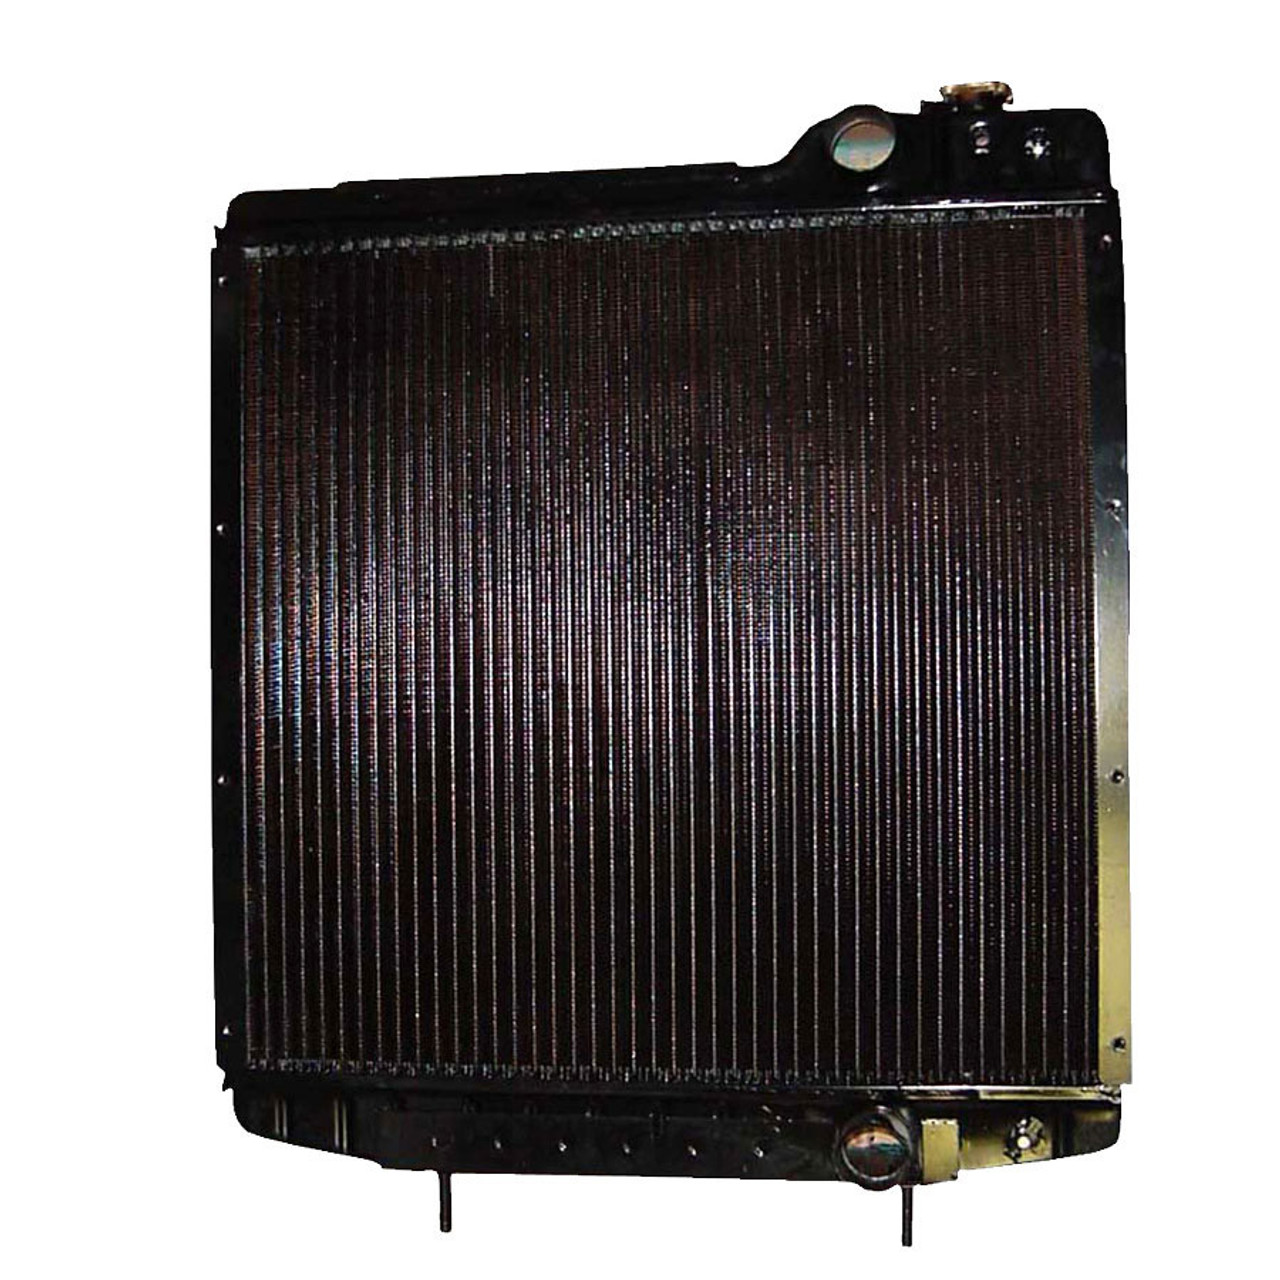 Radiator For Case/IH Tractors A190663 7110, 7120, 7130, 7140, 7150, 7210, 7220